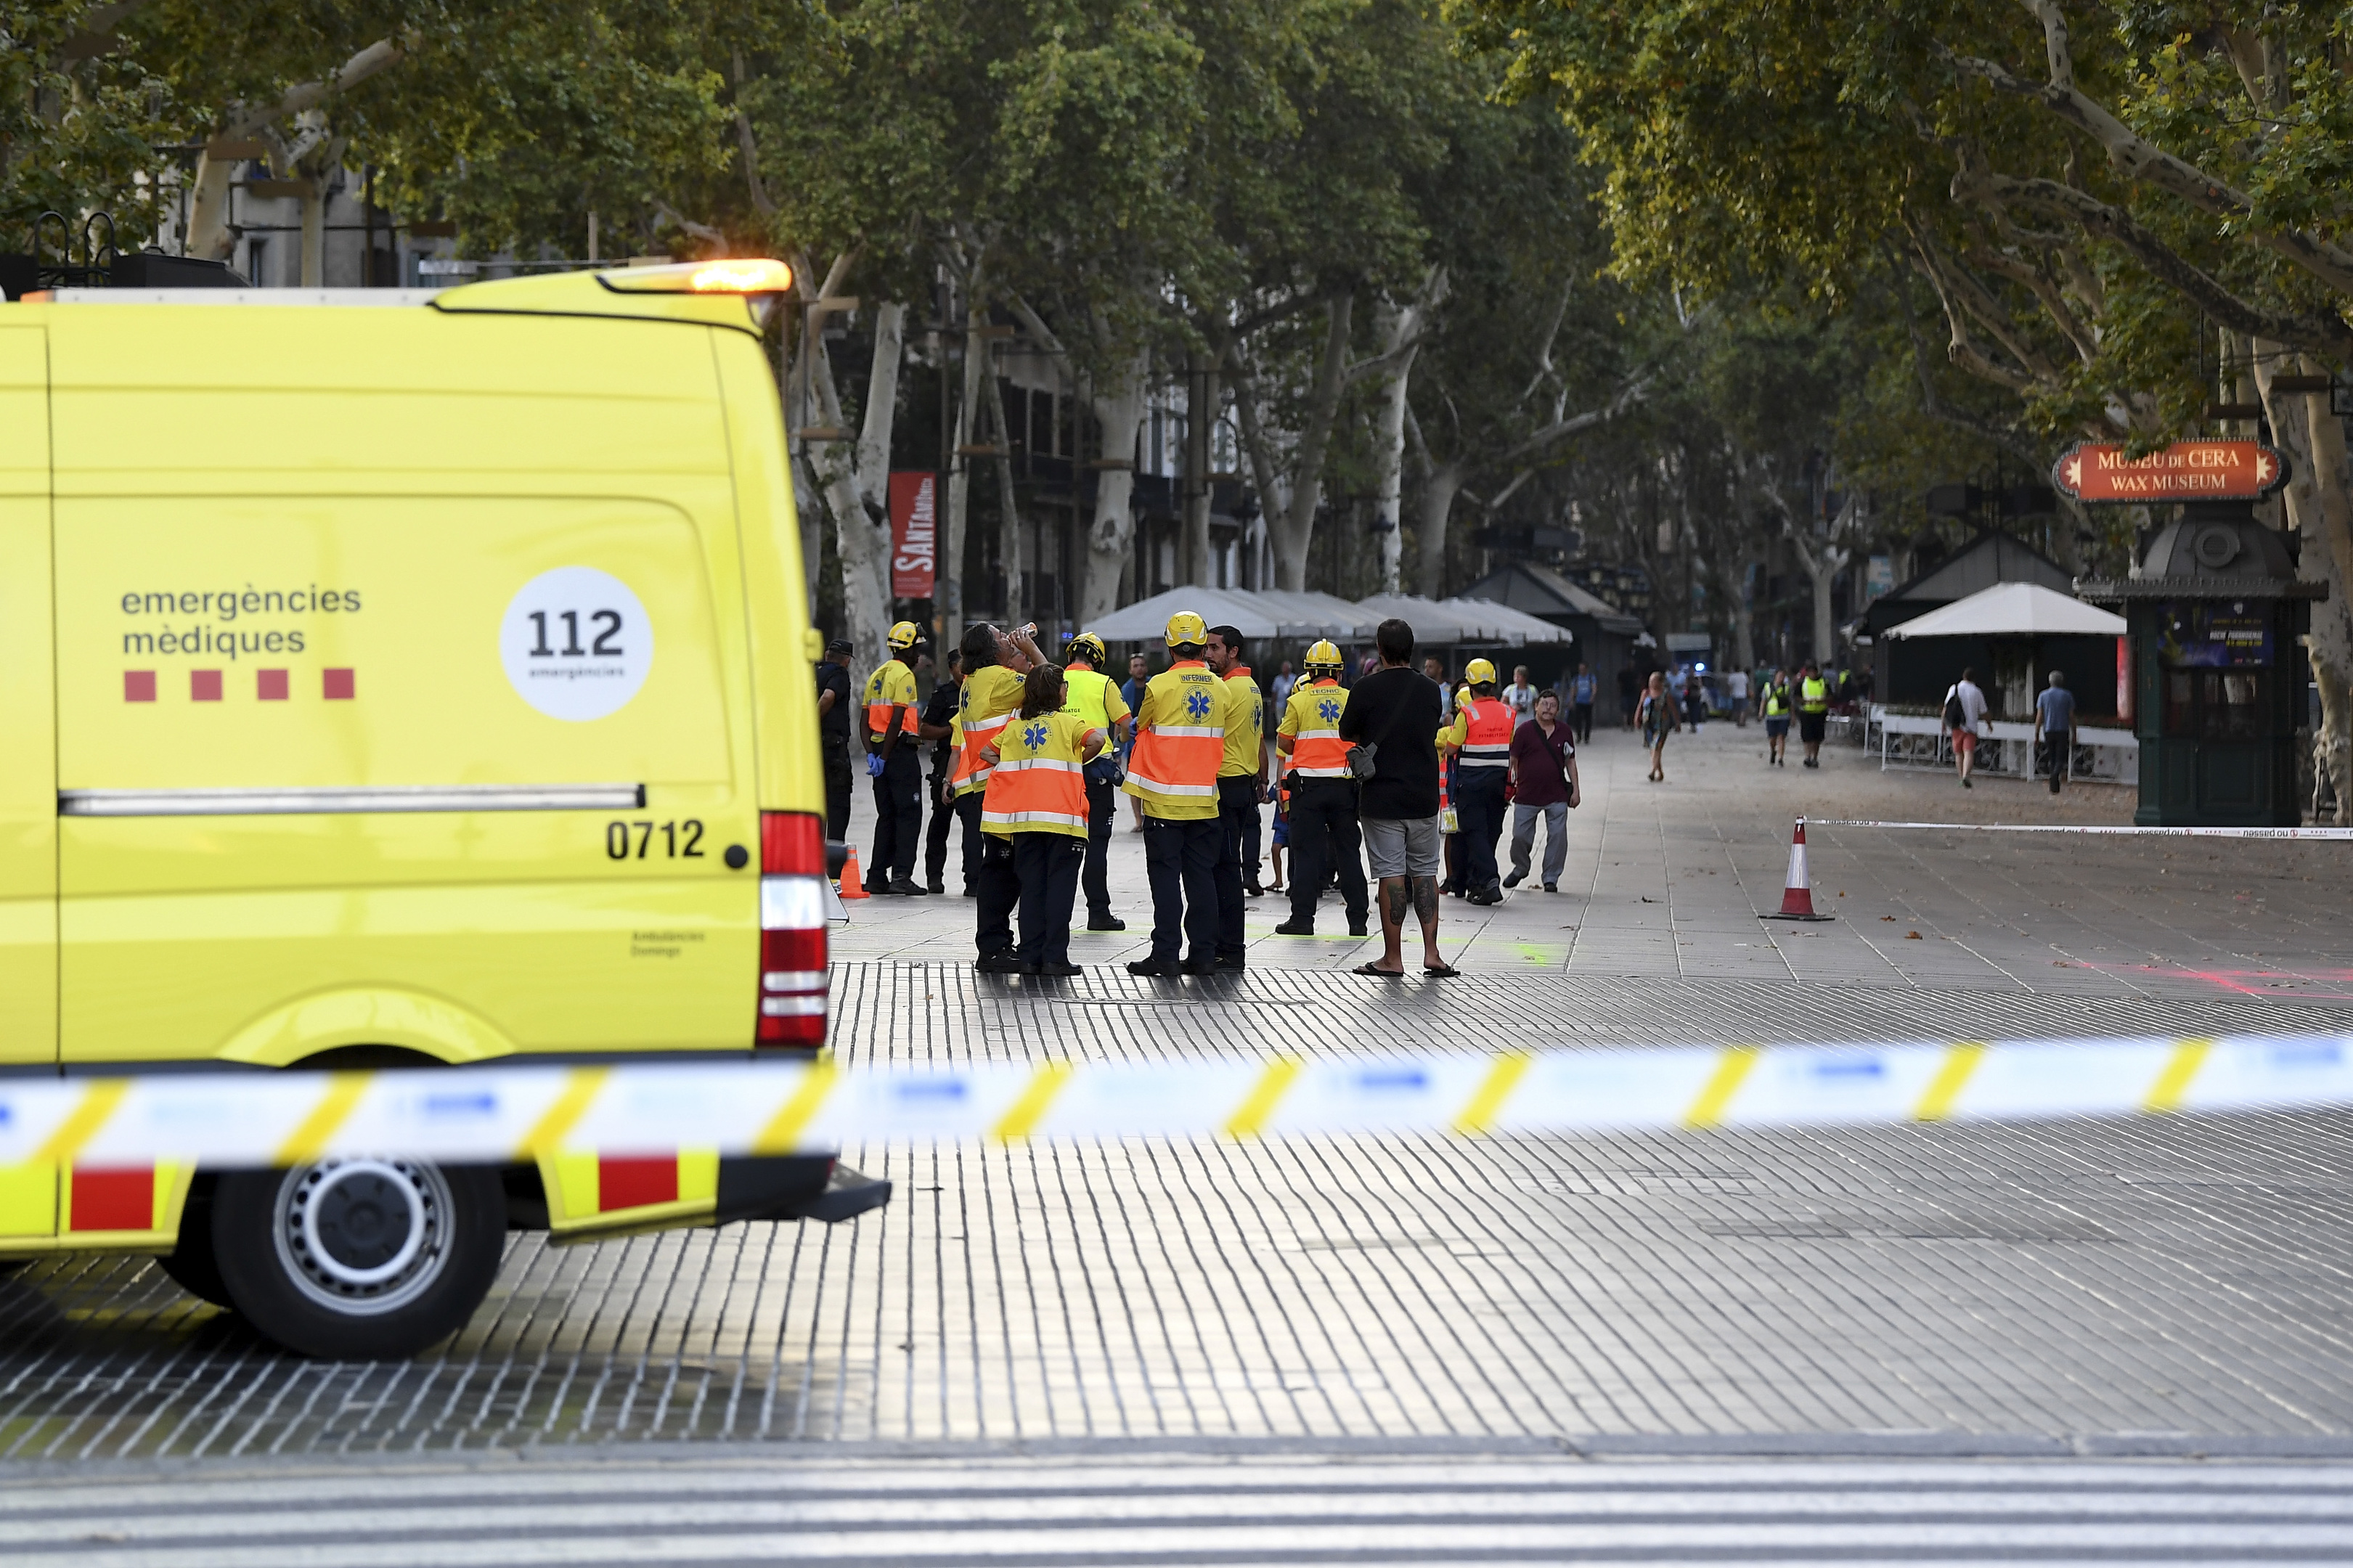 A general view of paramedics at the scene of a terrorist attack in the Las Ramblas area on August 17, 2017 in Barcelona, Spain. (David Ramos/Getty Images)